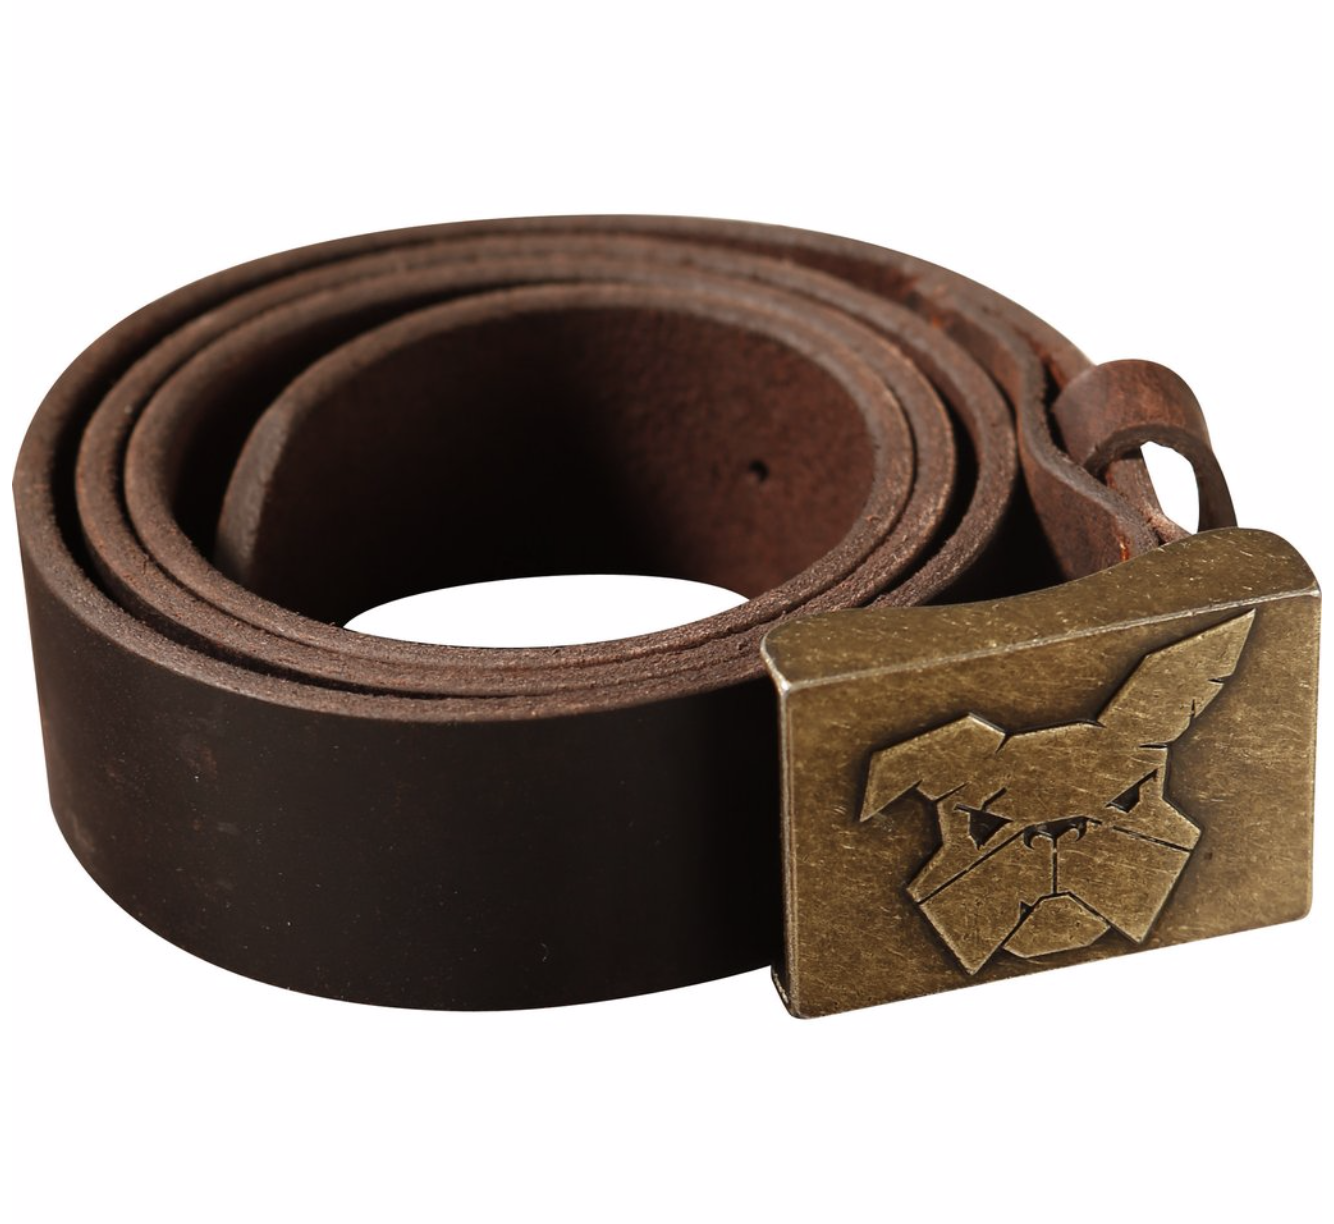 DAMNDOG CANVAS BELT